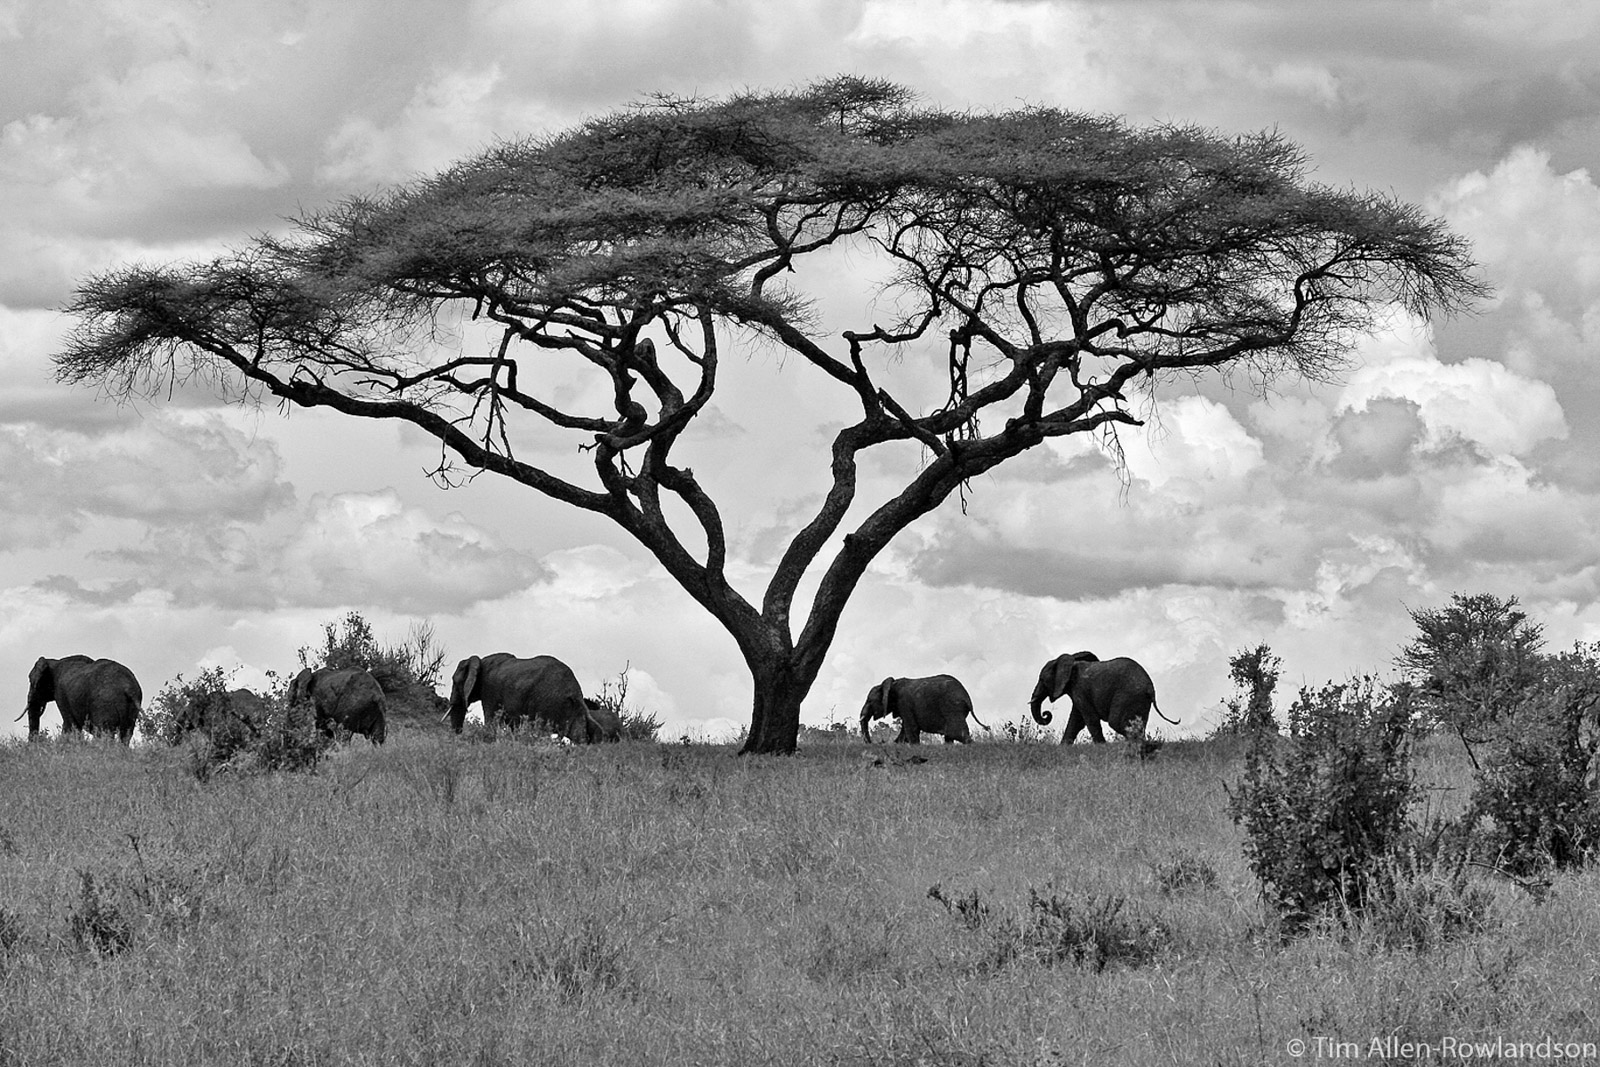 Black and white image of elephants and Acacia, Tarangire, Tanzania